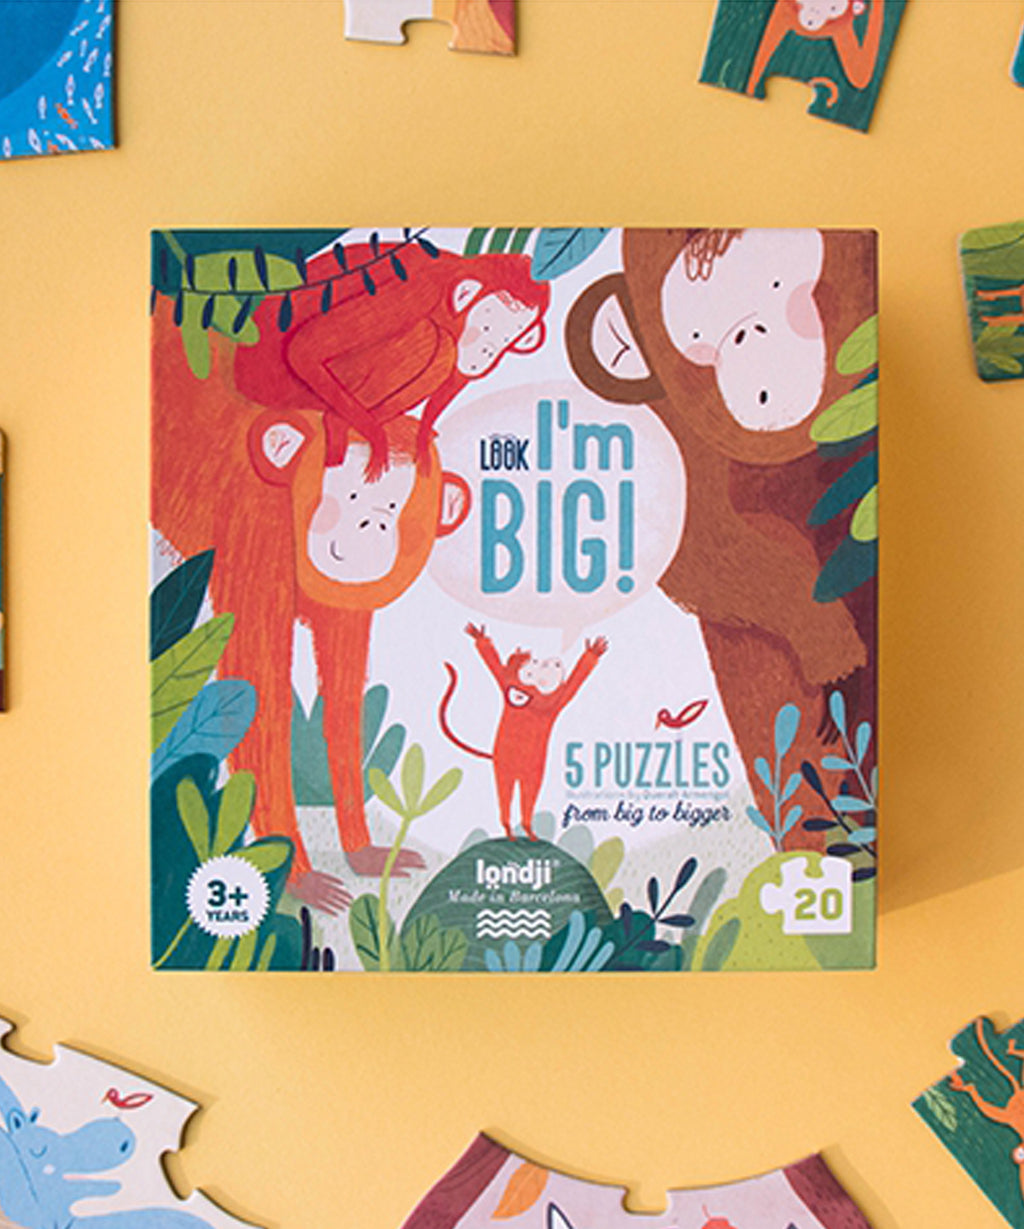 LONDJI - Look! I'm Big 5 Puzzles